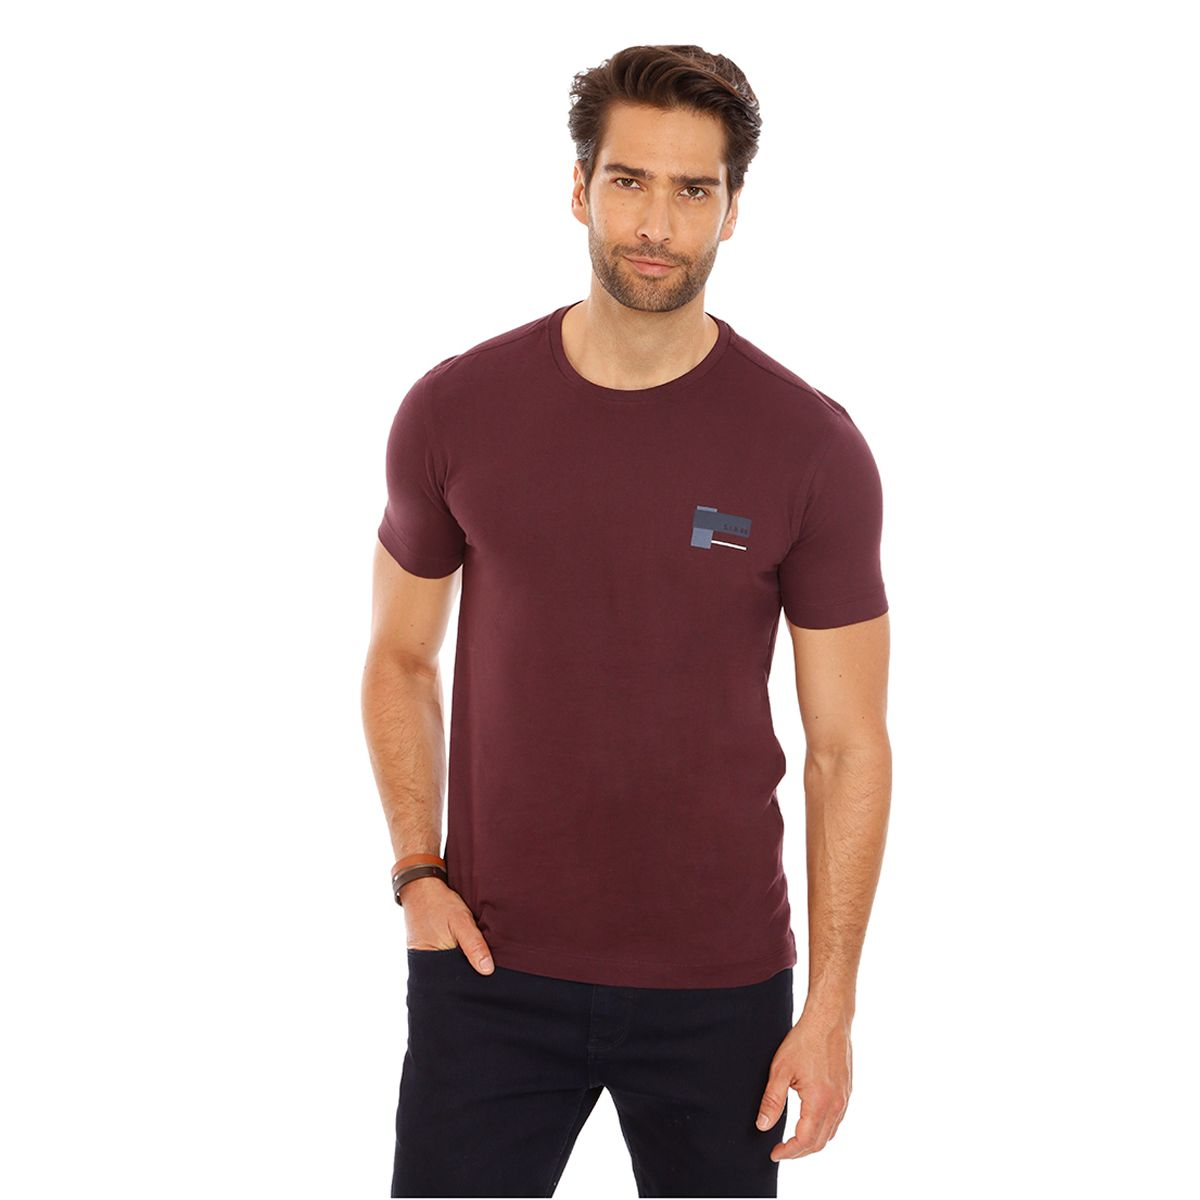 CAMISETA-FANTASIA-M-C-NOS---BORDEAUX-LEAGLE-